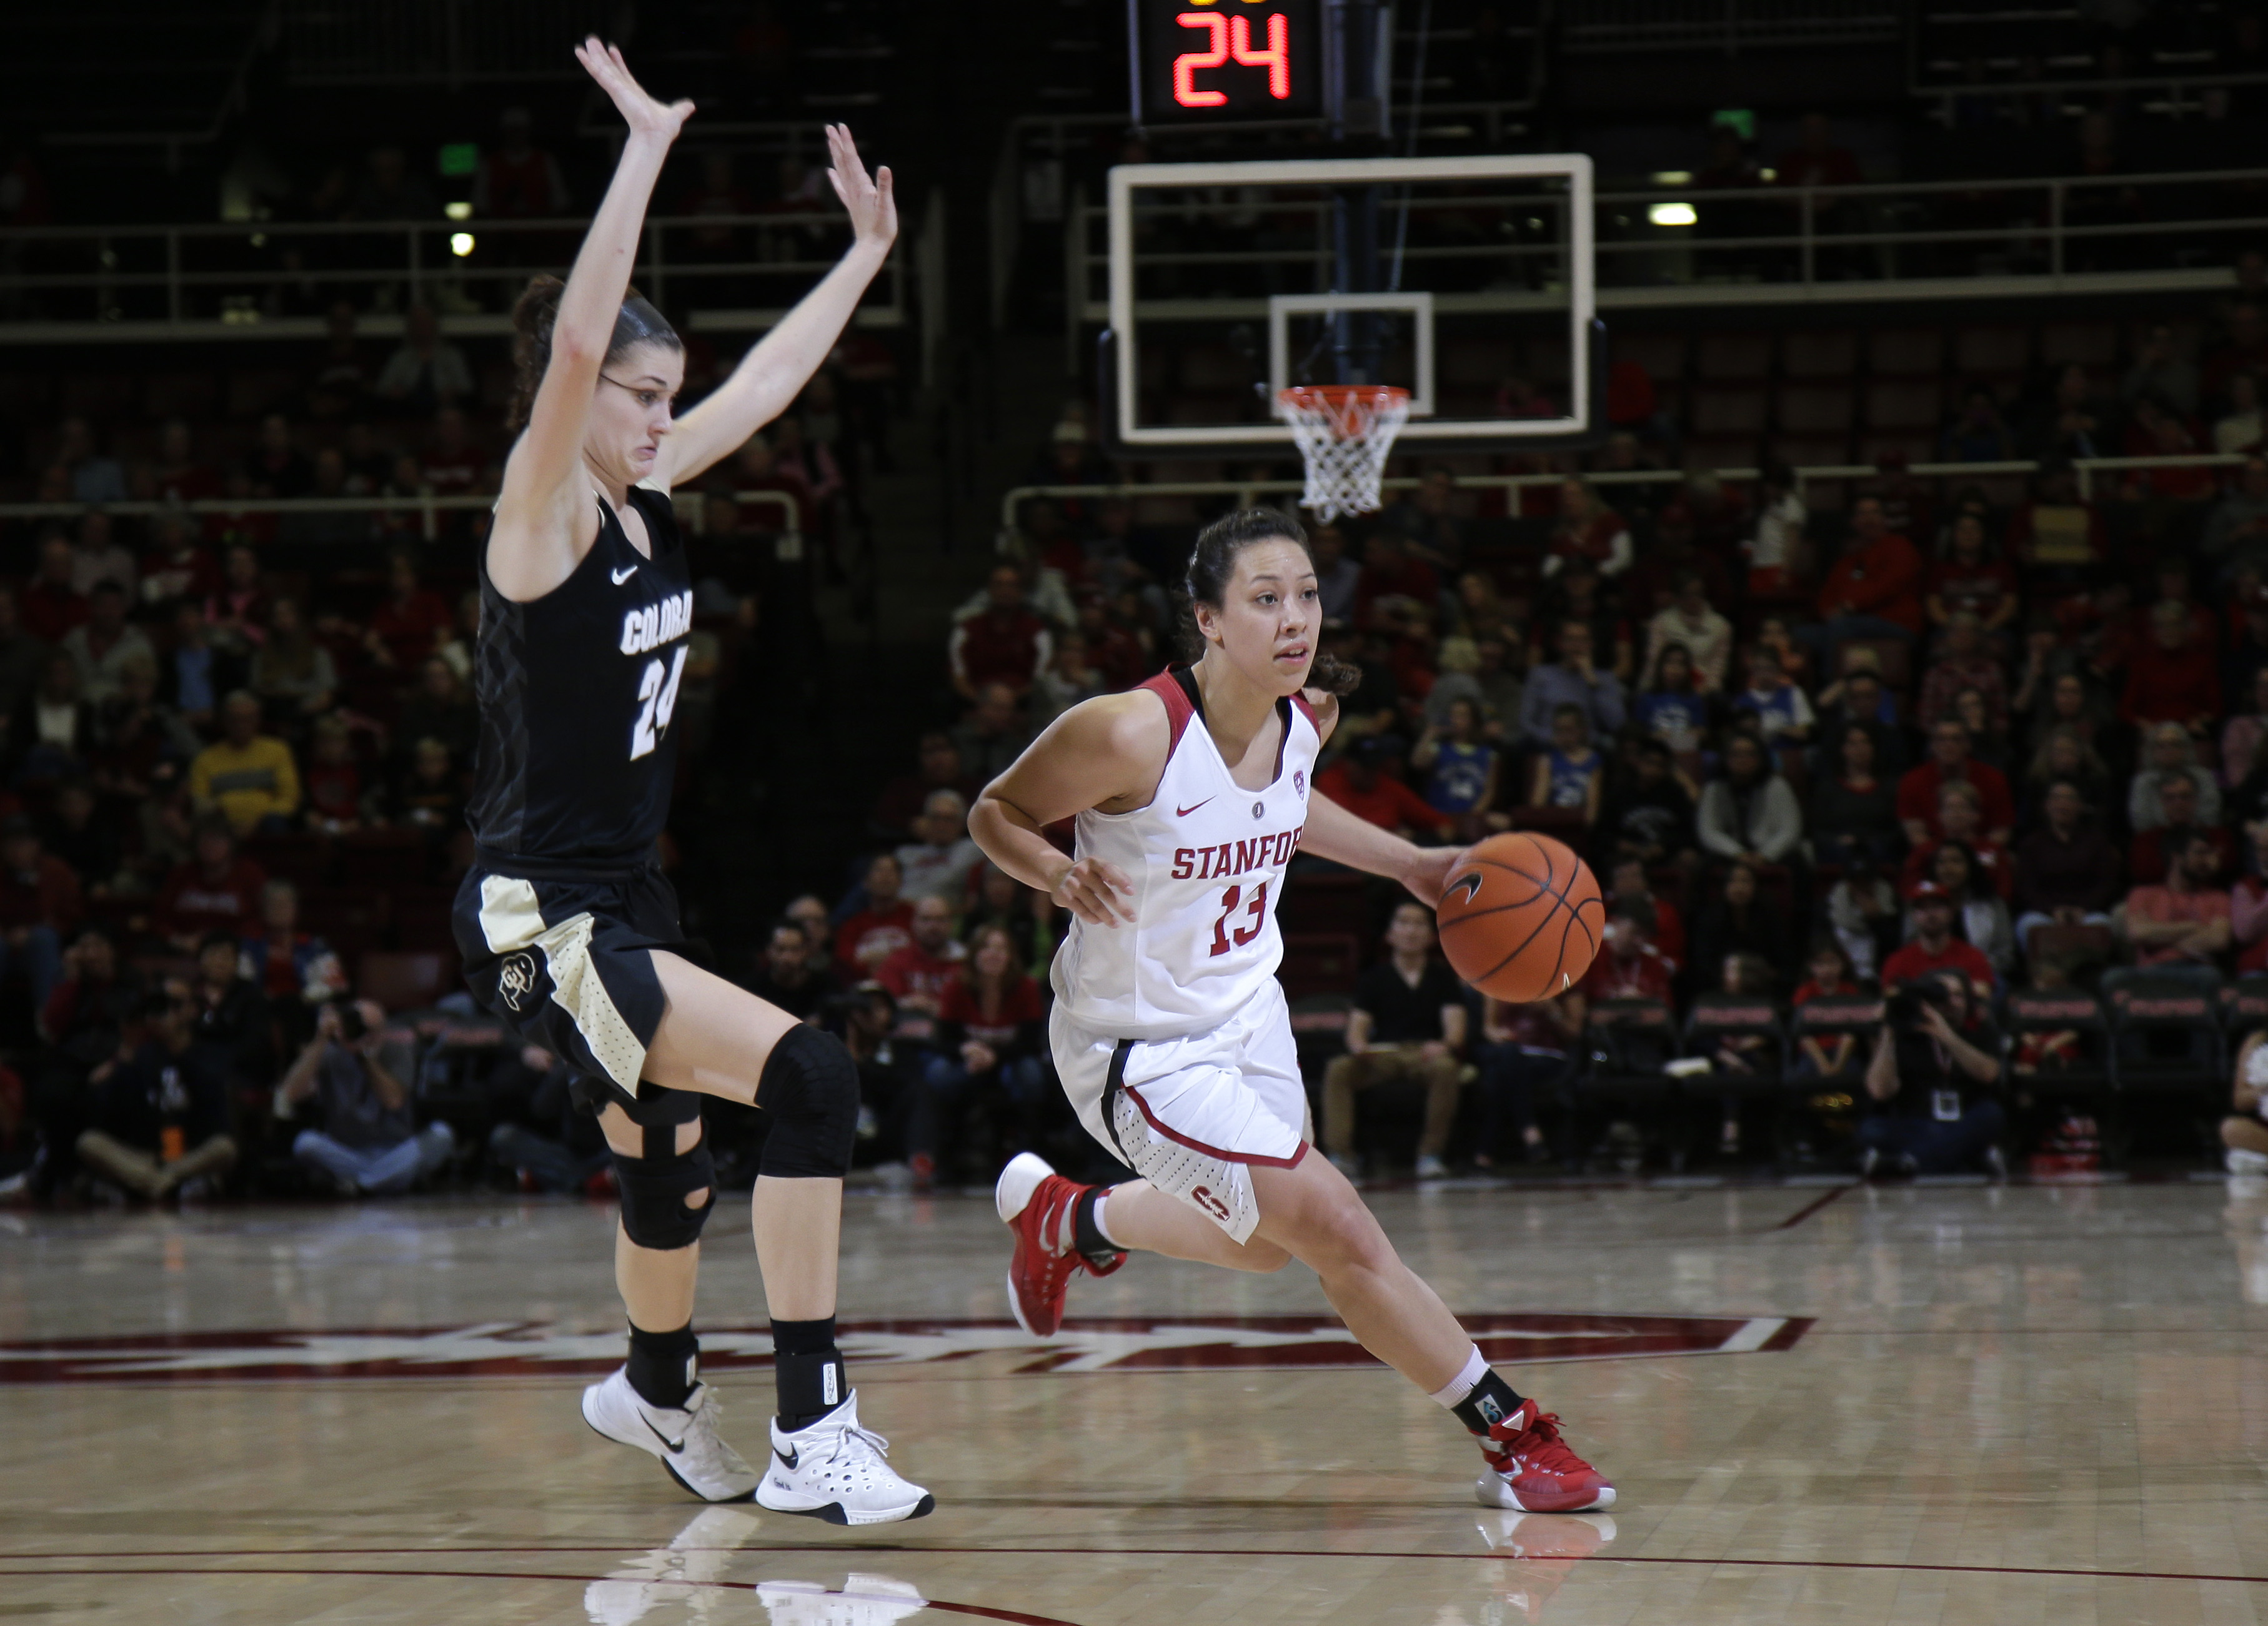 Stanford guard Marta Sniezek (13) dribbles next to Colorado guard Lauren Huggins during the first half of an NCAA college basketball game, Sunday, Jan. 10, 2016, in Stanford, Calif.  (AP Photo/Marcio Jose Sanchez)